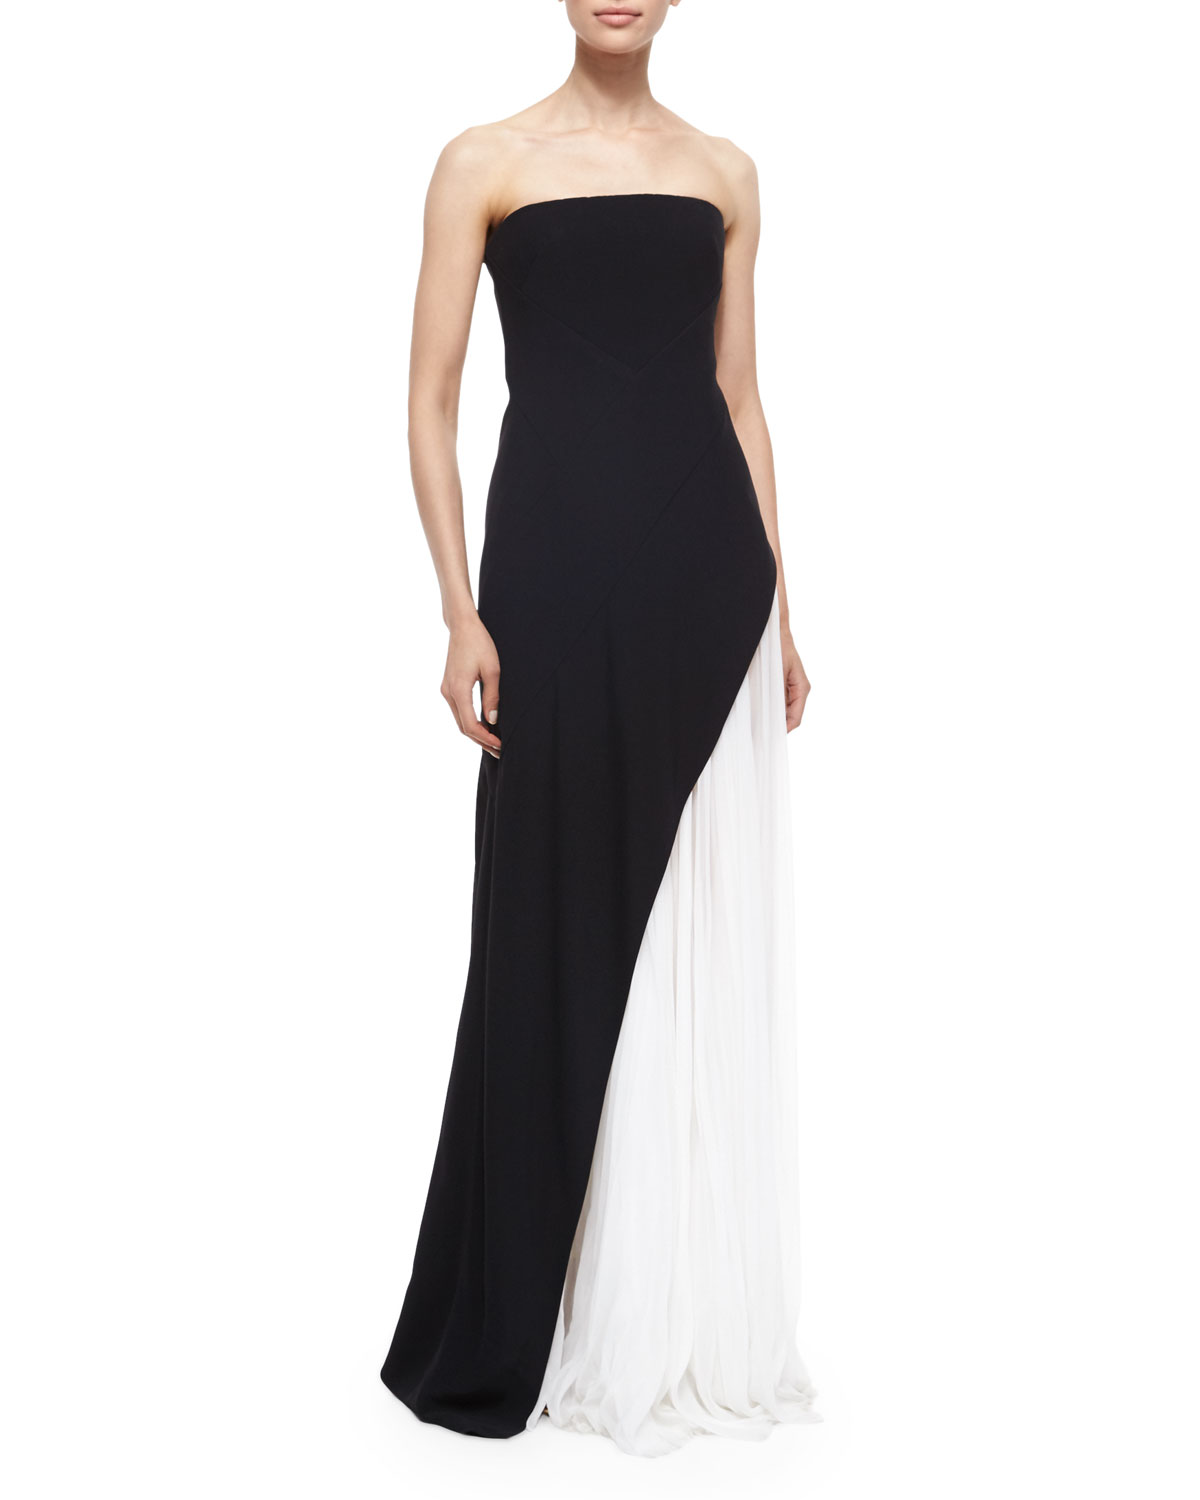 J. Mendel Strapless Asymmetric Pleat Gown, Black/White | Neiman Marcus